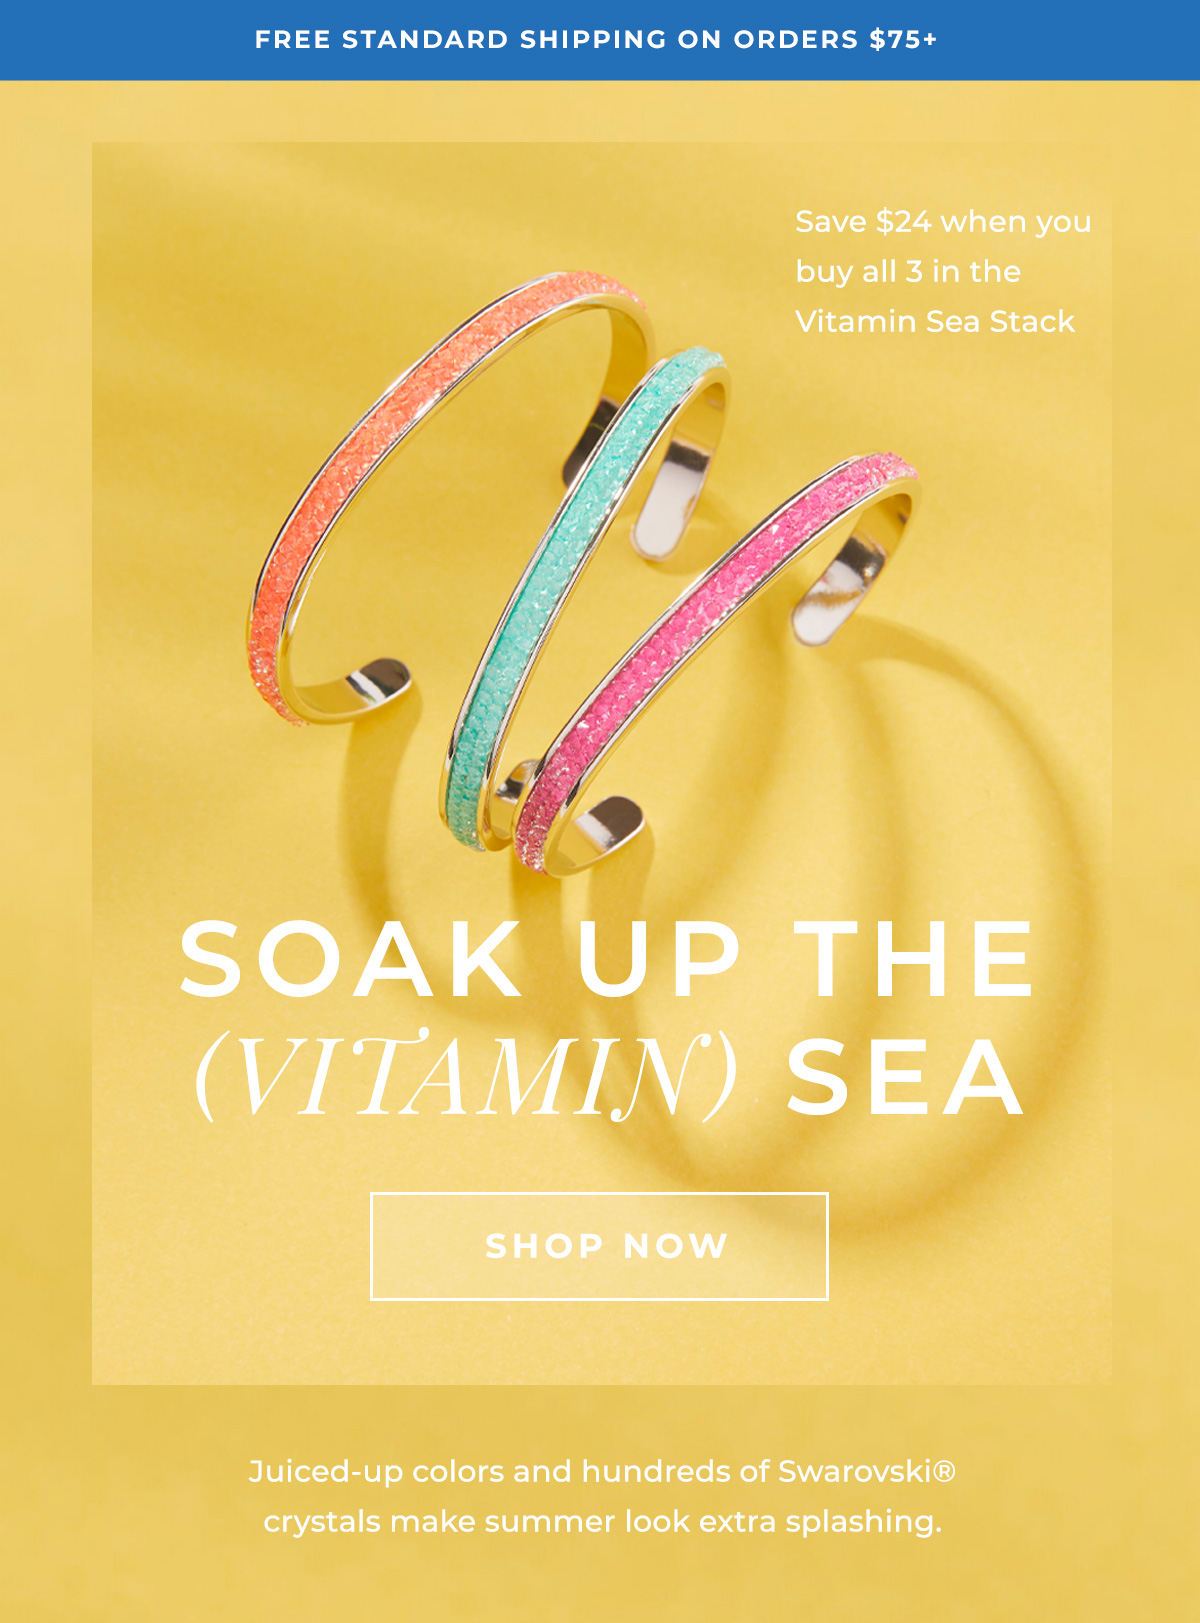 FREE STANDARD SHIPPING ON ORDERS $75+ | Save $24 when you buy all 3 in the Vitamin Sea Stack | SOAK UP THE (VITAMIN) SEA | SHOP NOW | Juiced-up colors and hundreds of Swarovski crystals make summer look extra splashing.